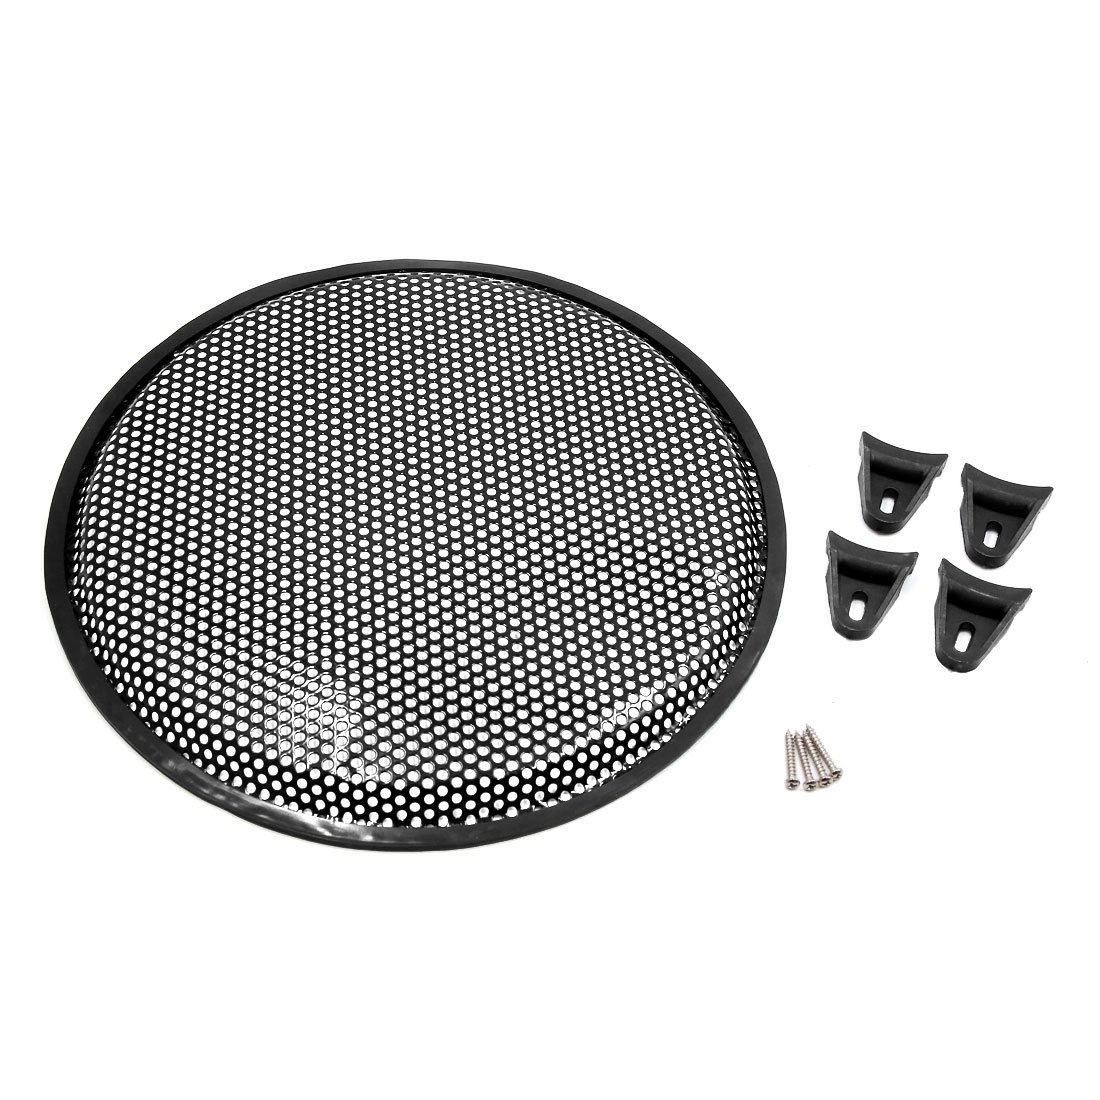 uxcell 12 Inch Metal Car Audio Speaker Subwoofer Grill Gridiron Cover Protector Black